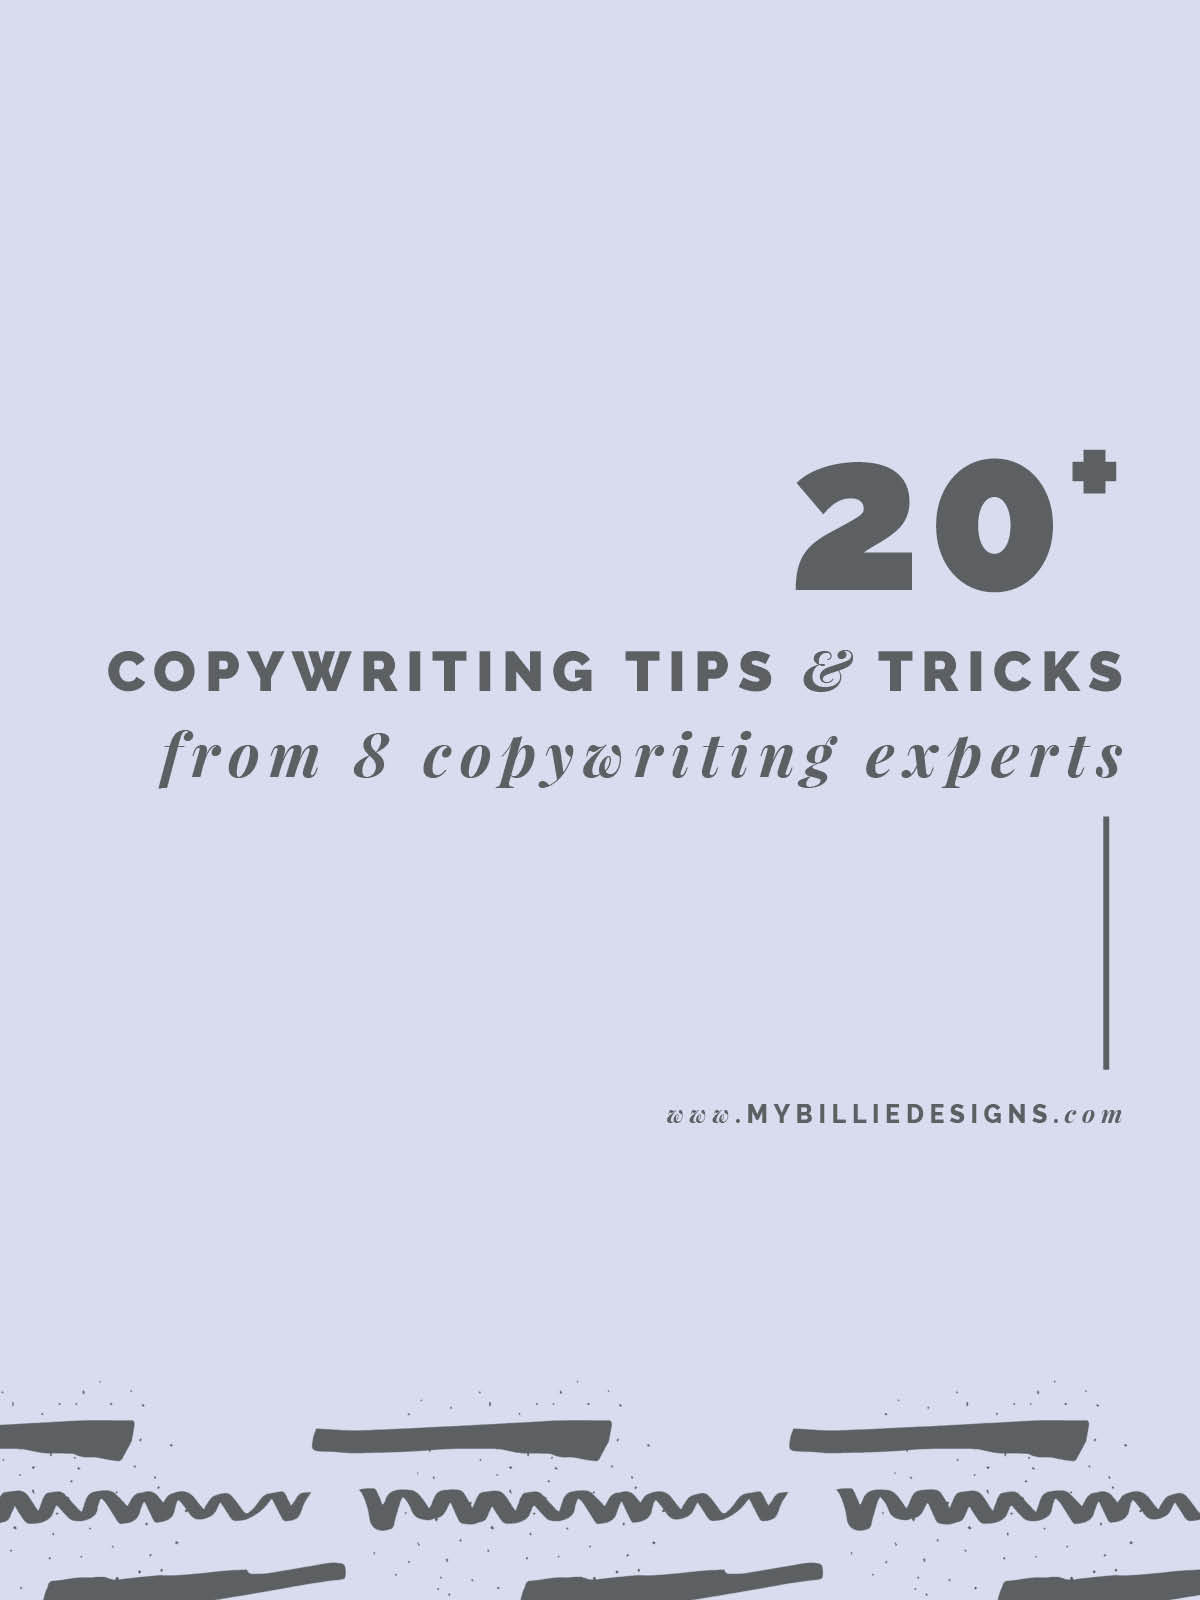 20+ Copywriting Tips & Tricks from 8 Copywriting Experts